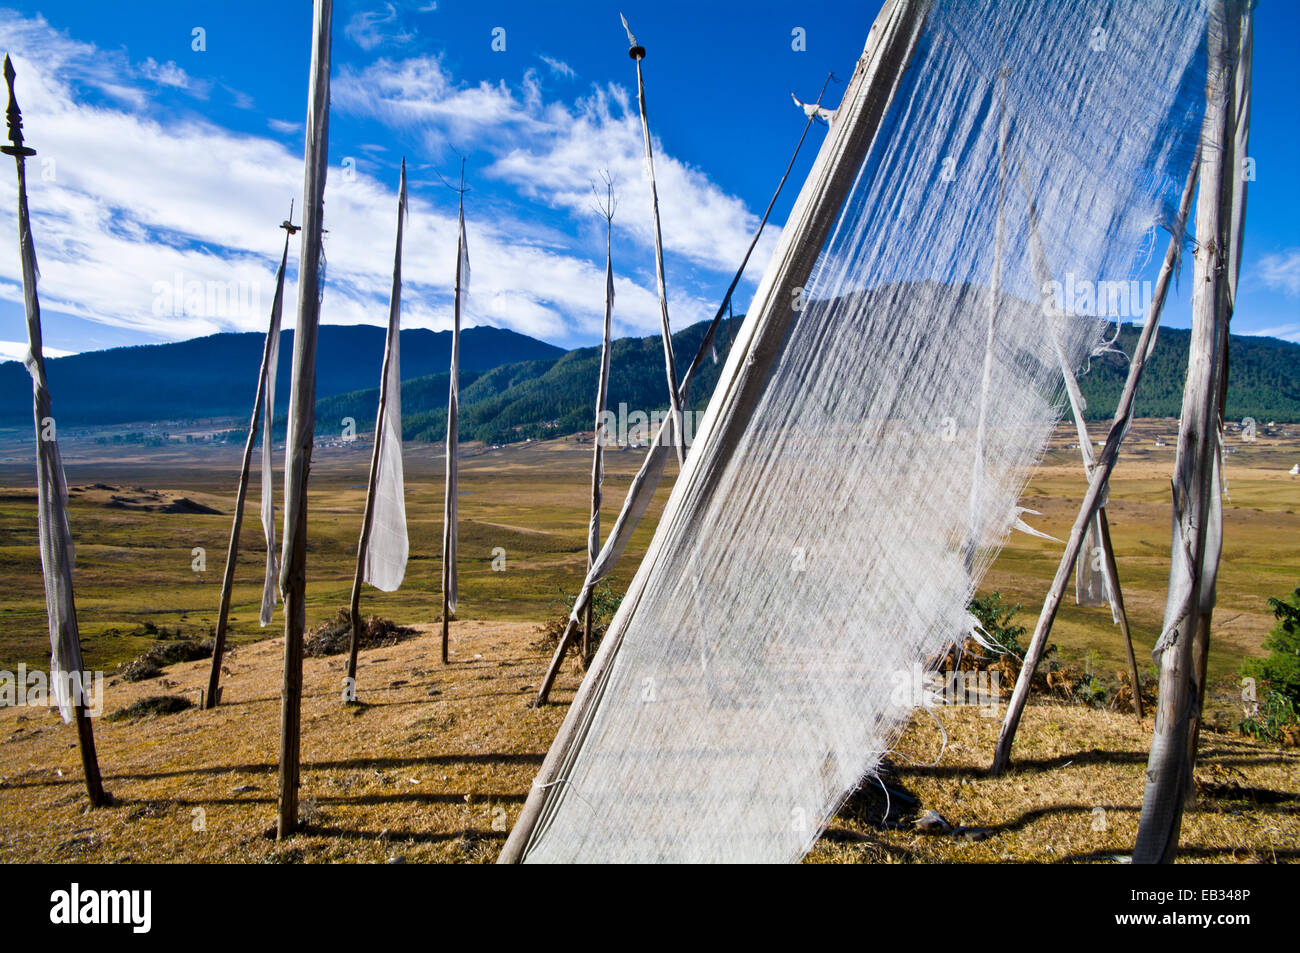 The translucent cloth of a prayer flag fluttering in the wind above a Himalaya wetland. - Stock Image